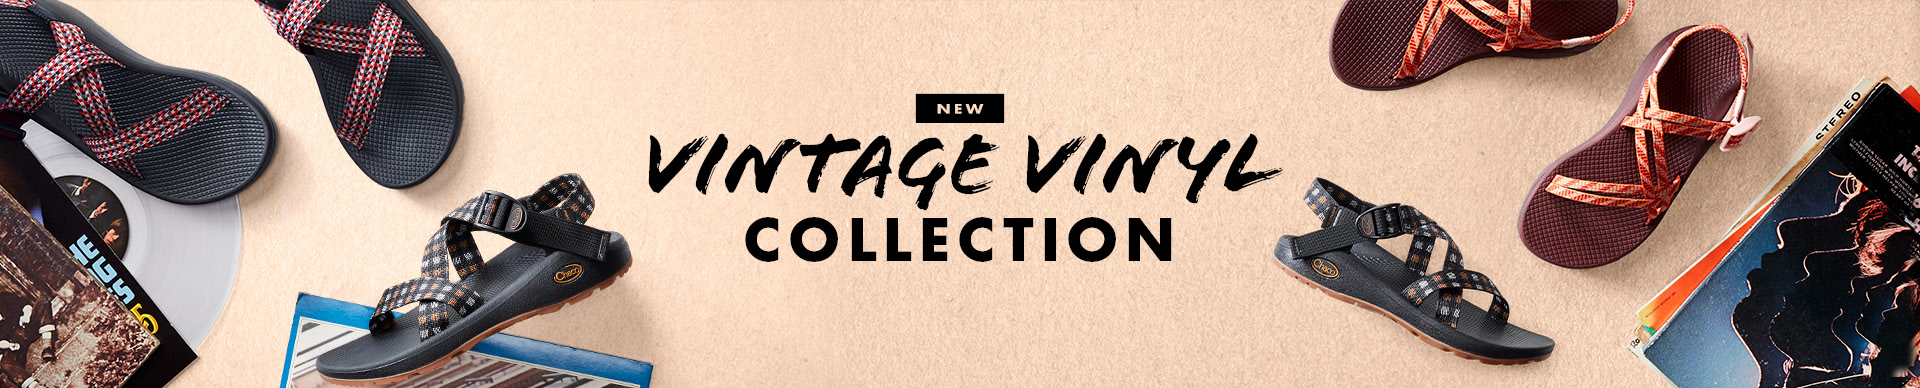 NEW: Vintage Vinyl Collection